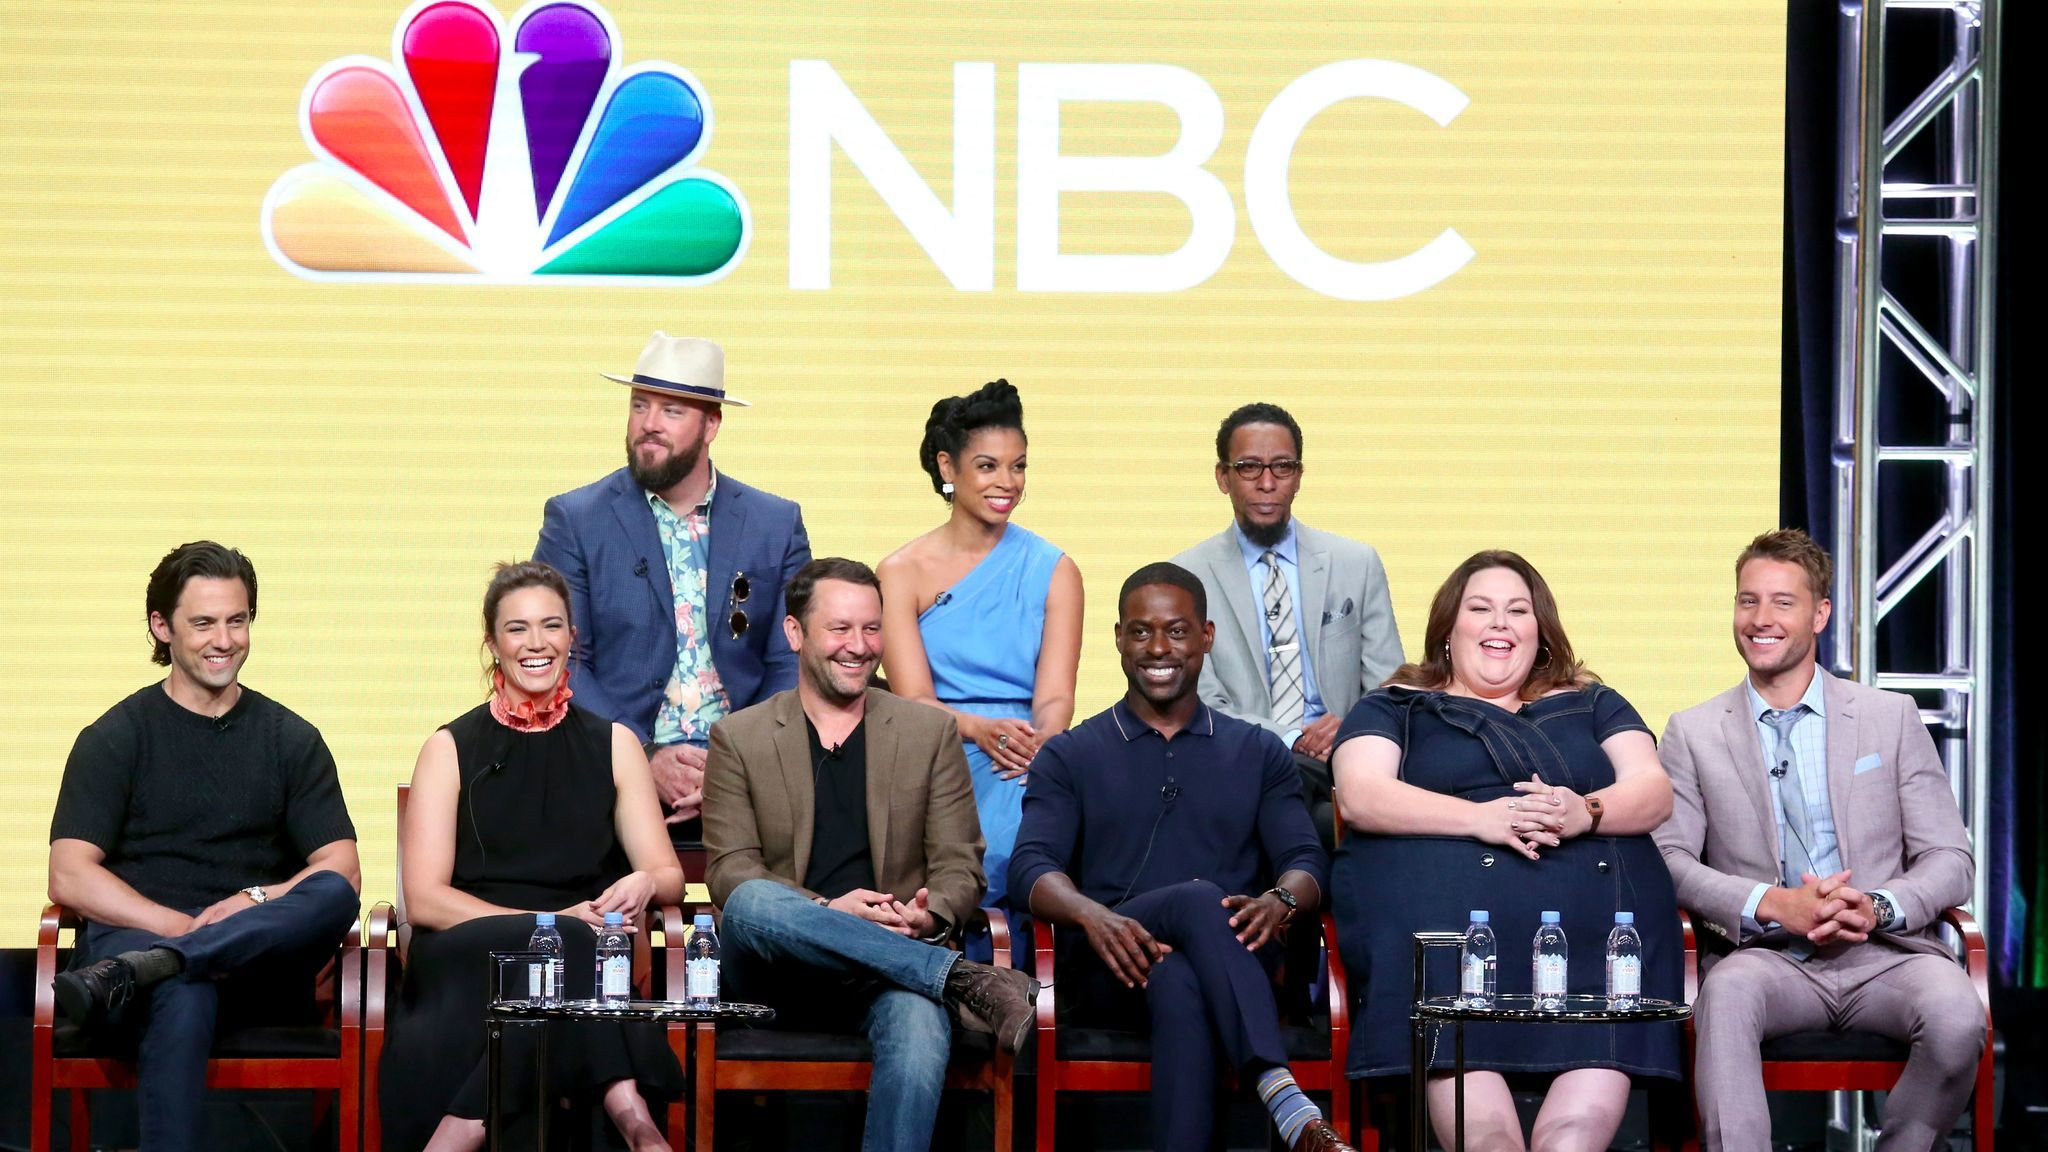 """The cast and creator of """"This Is Us"""" at the Television Critics Assn. press tour in Beverly Hills. (Frederick M. Brown / Getty Images)"""